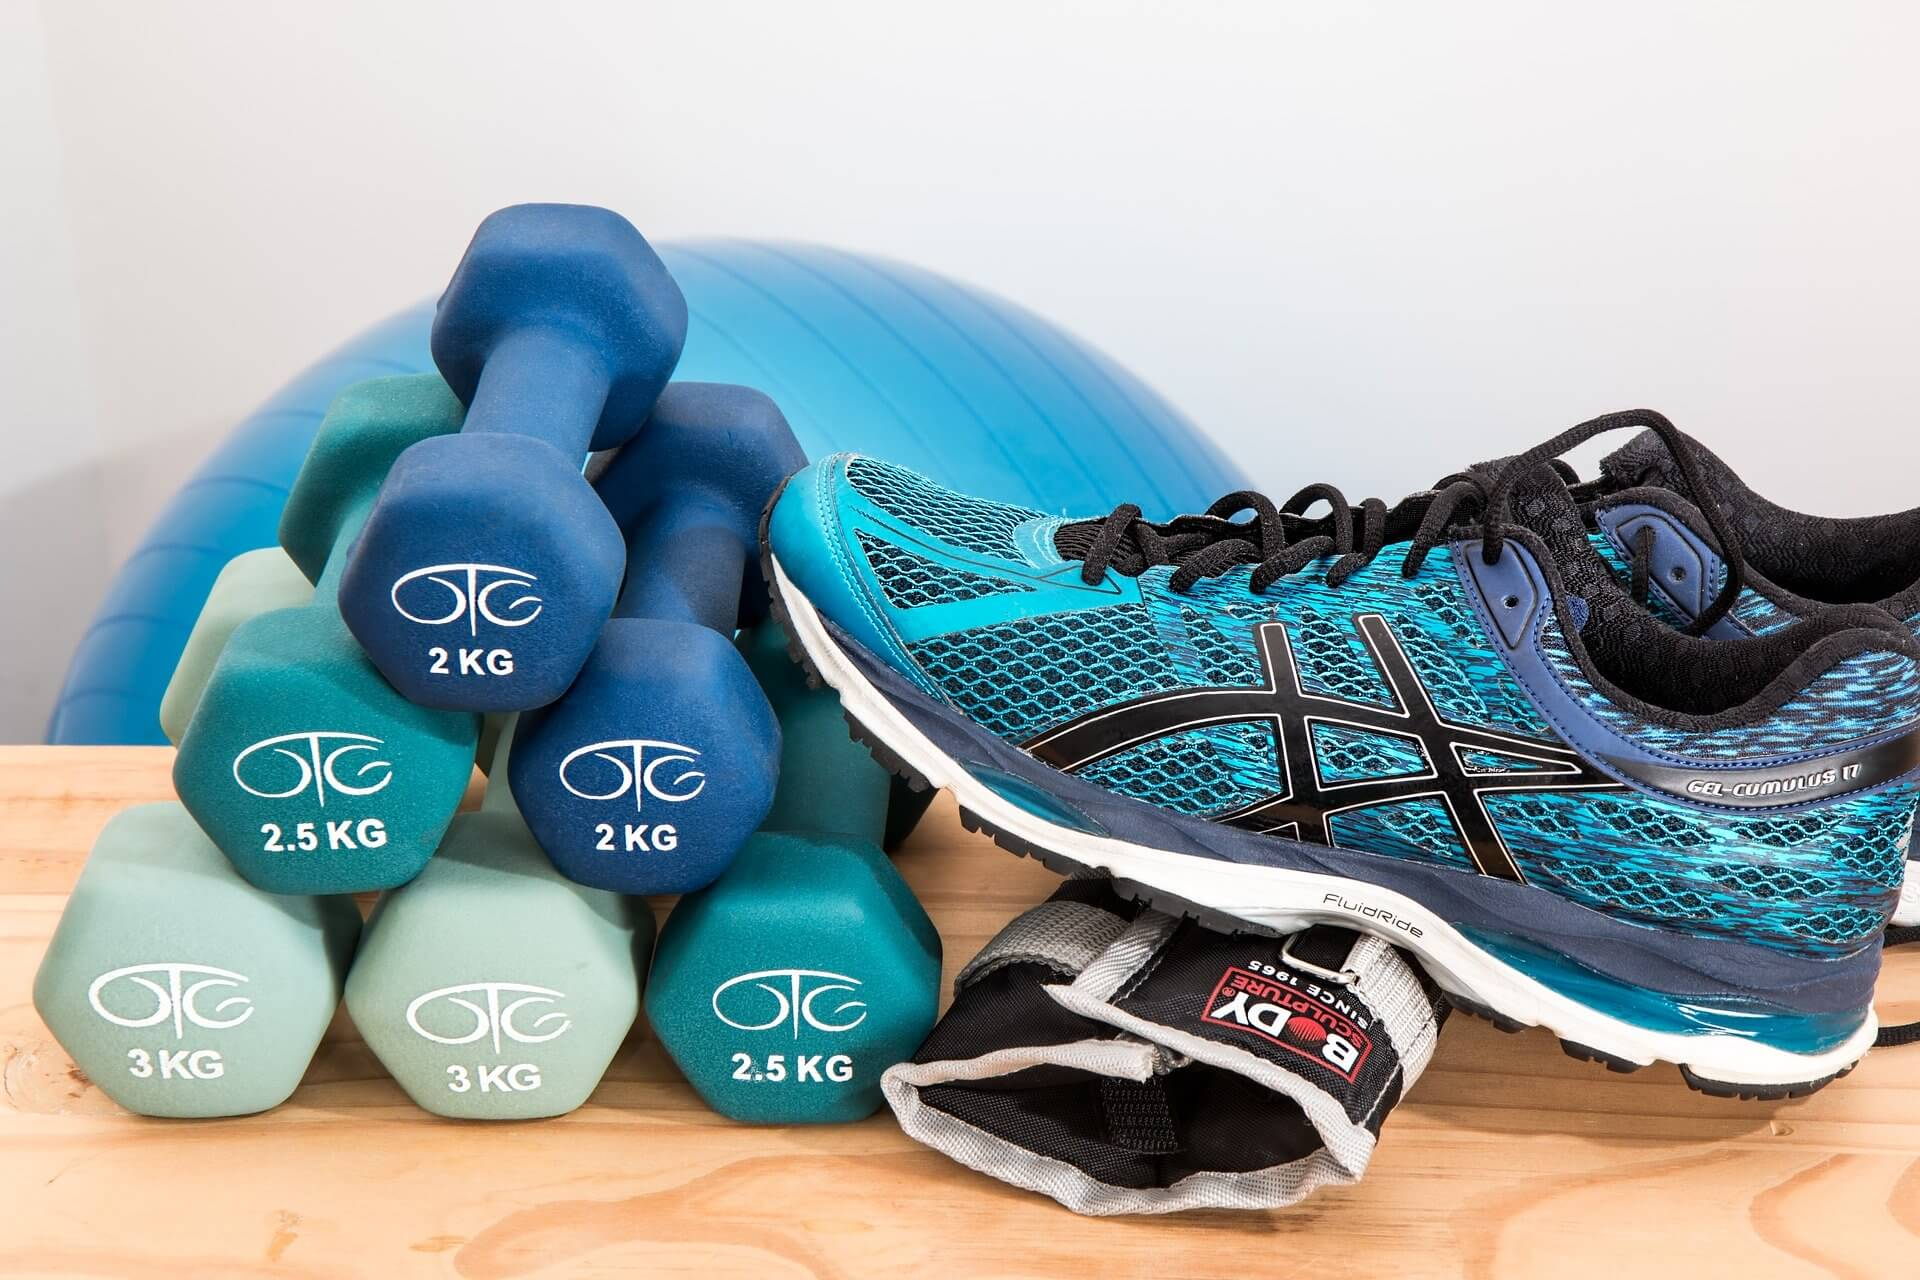 The best online personal training programs have real personal trainers